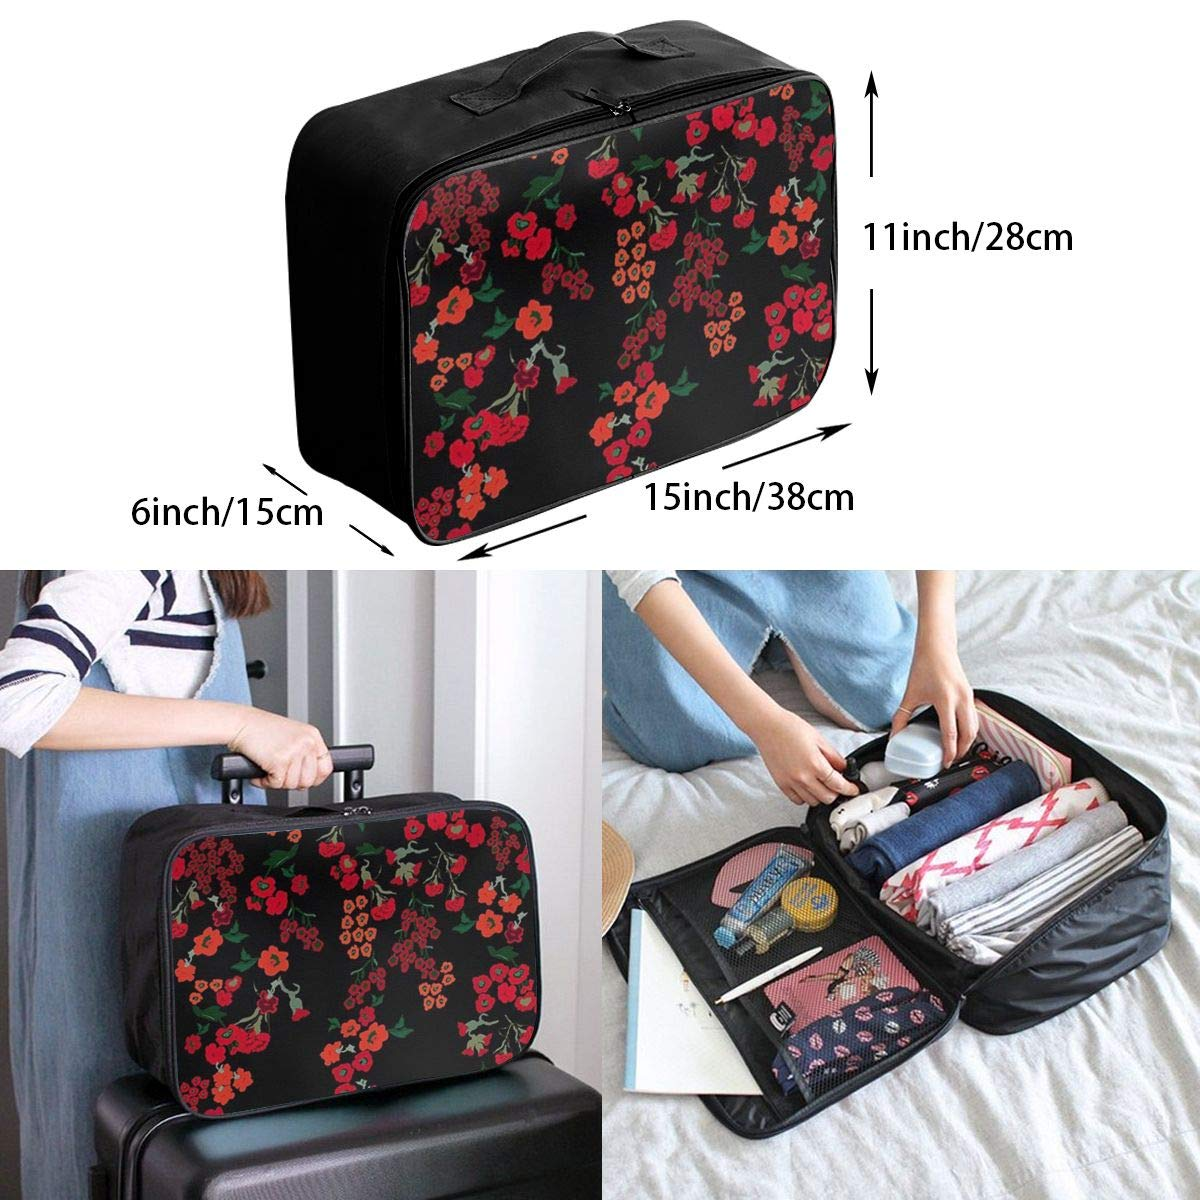 Red Floral Flowers In Dark Travel Lightweight Waterproof Folding Storage Portable Luggage Duffle Tote Bag Large Capacity In Trolley Handle Bags 6x11x15 Inch